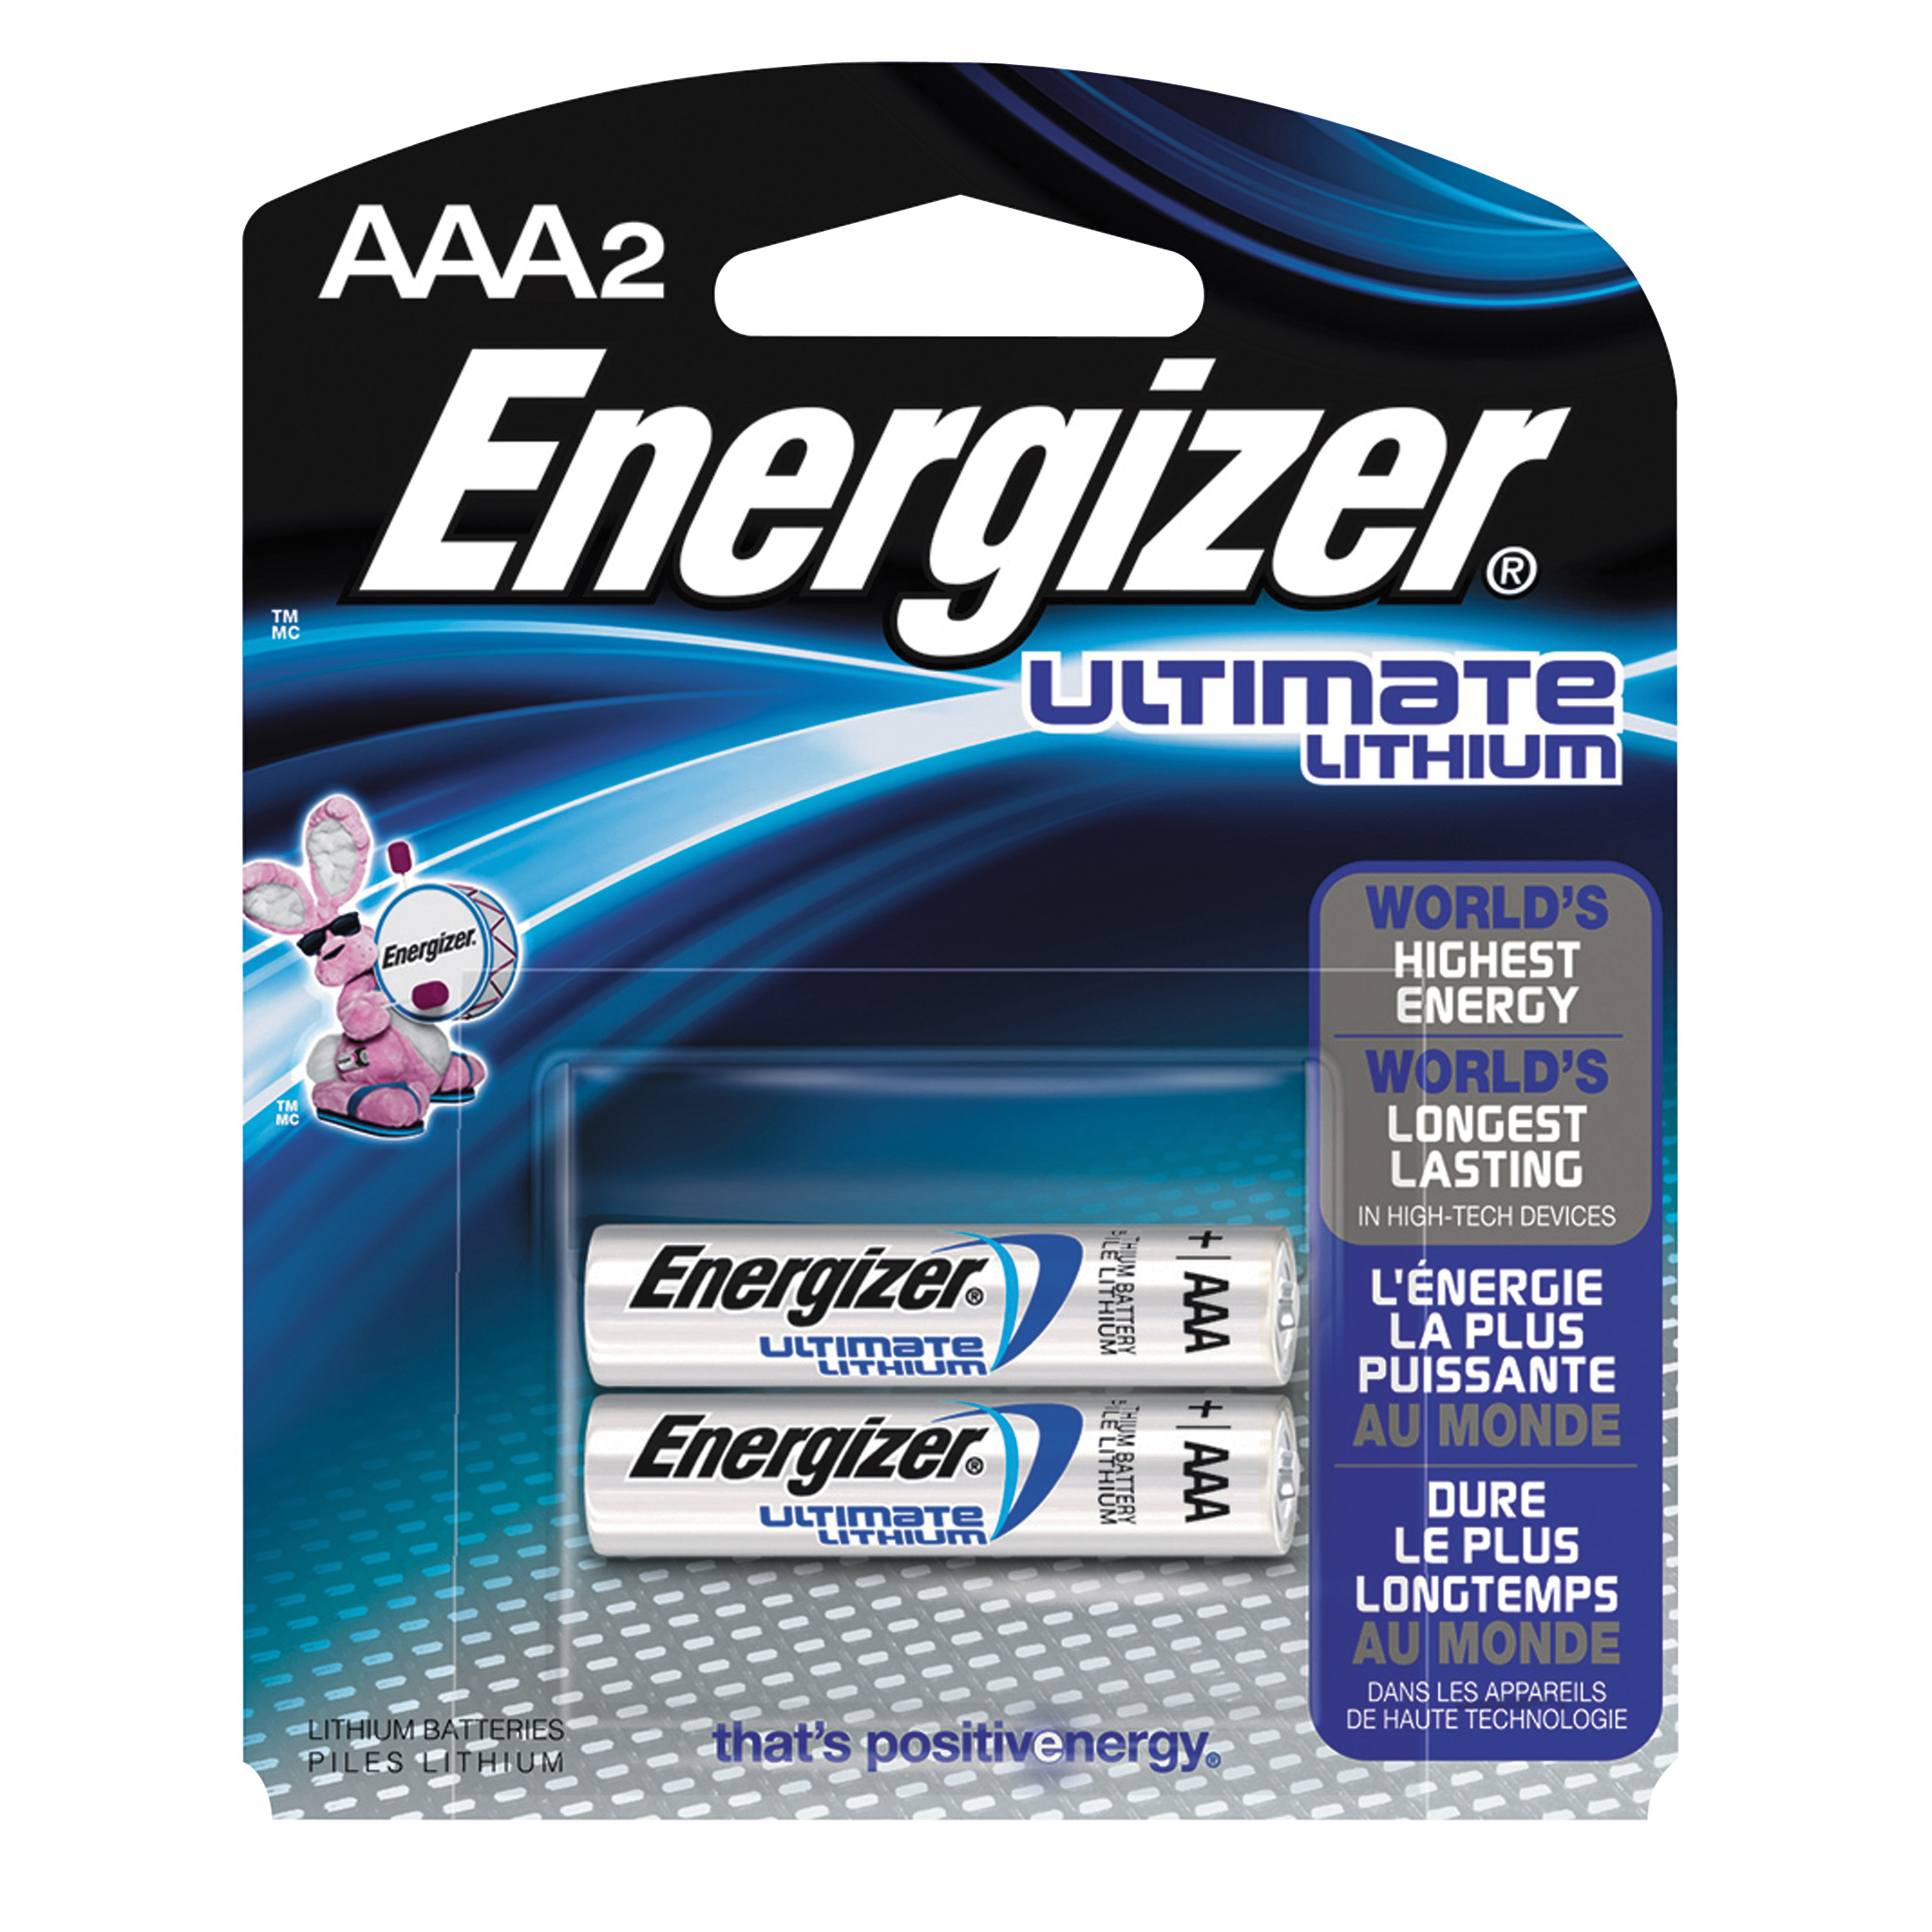 Picture of Energizer L92 Series L92BP-2 Lithium Battery, 1.5 V Battery, 1250 mAh, AAA Battery, Lithium, Iron Disulfide